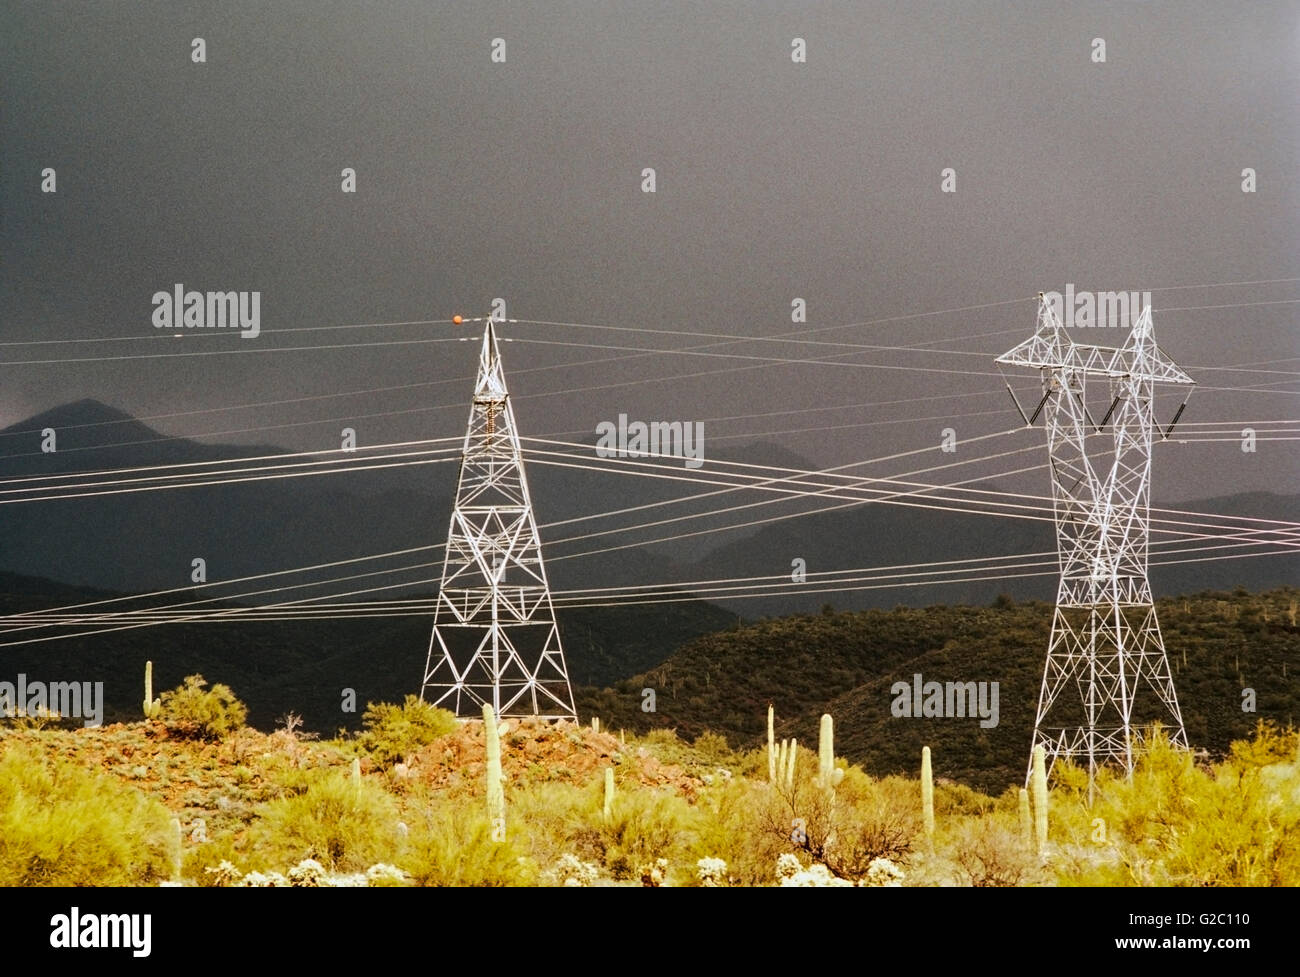 Electrical transmission lines and towers with a dramatic storm sky in the desert north of Phoenix, Arizona, USA - Stock Image